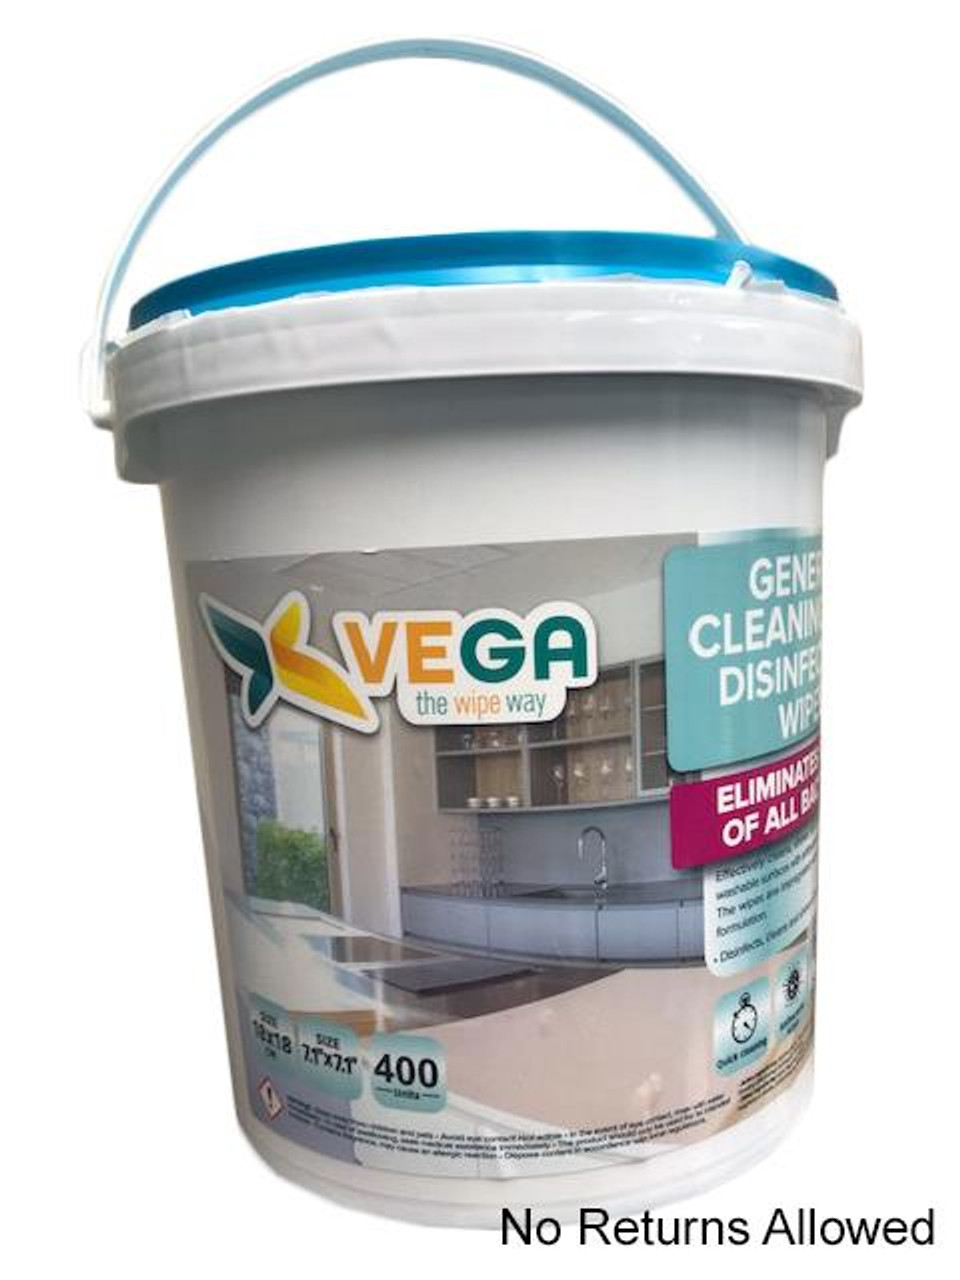 Vega Disinfecting Wipes, Ready-To-Use Wipes - 400, Kills 99.9 % (NON-RETURNABLE)